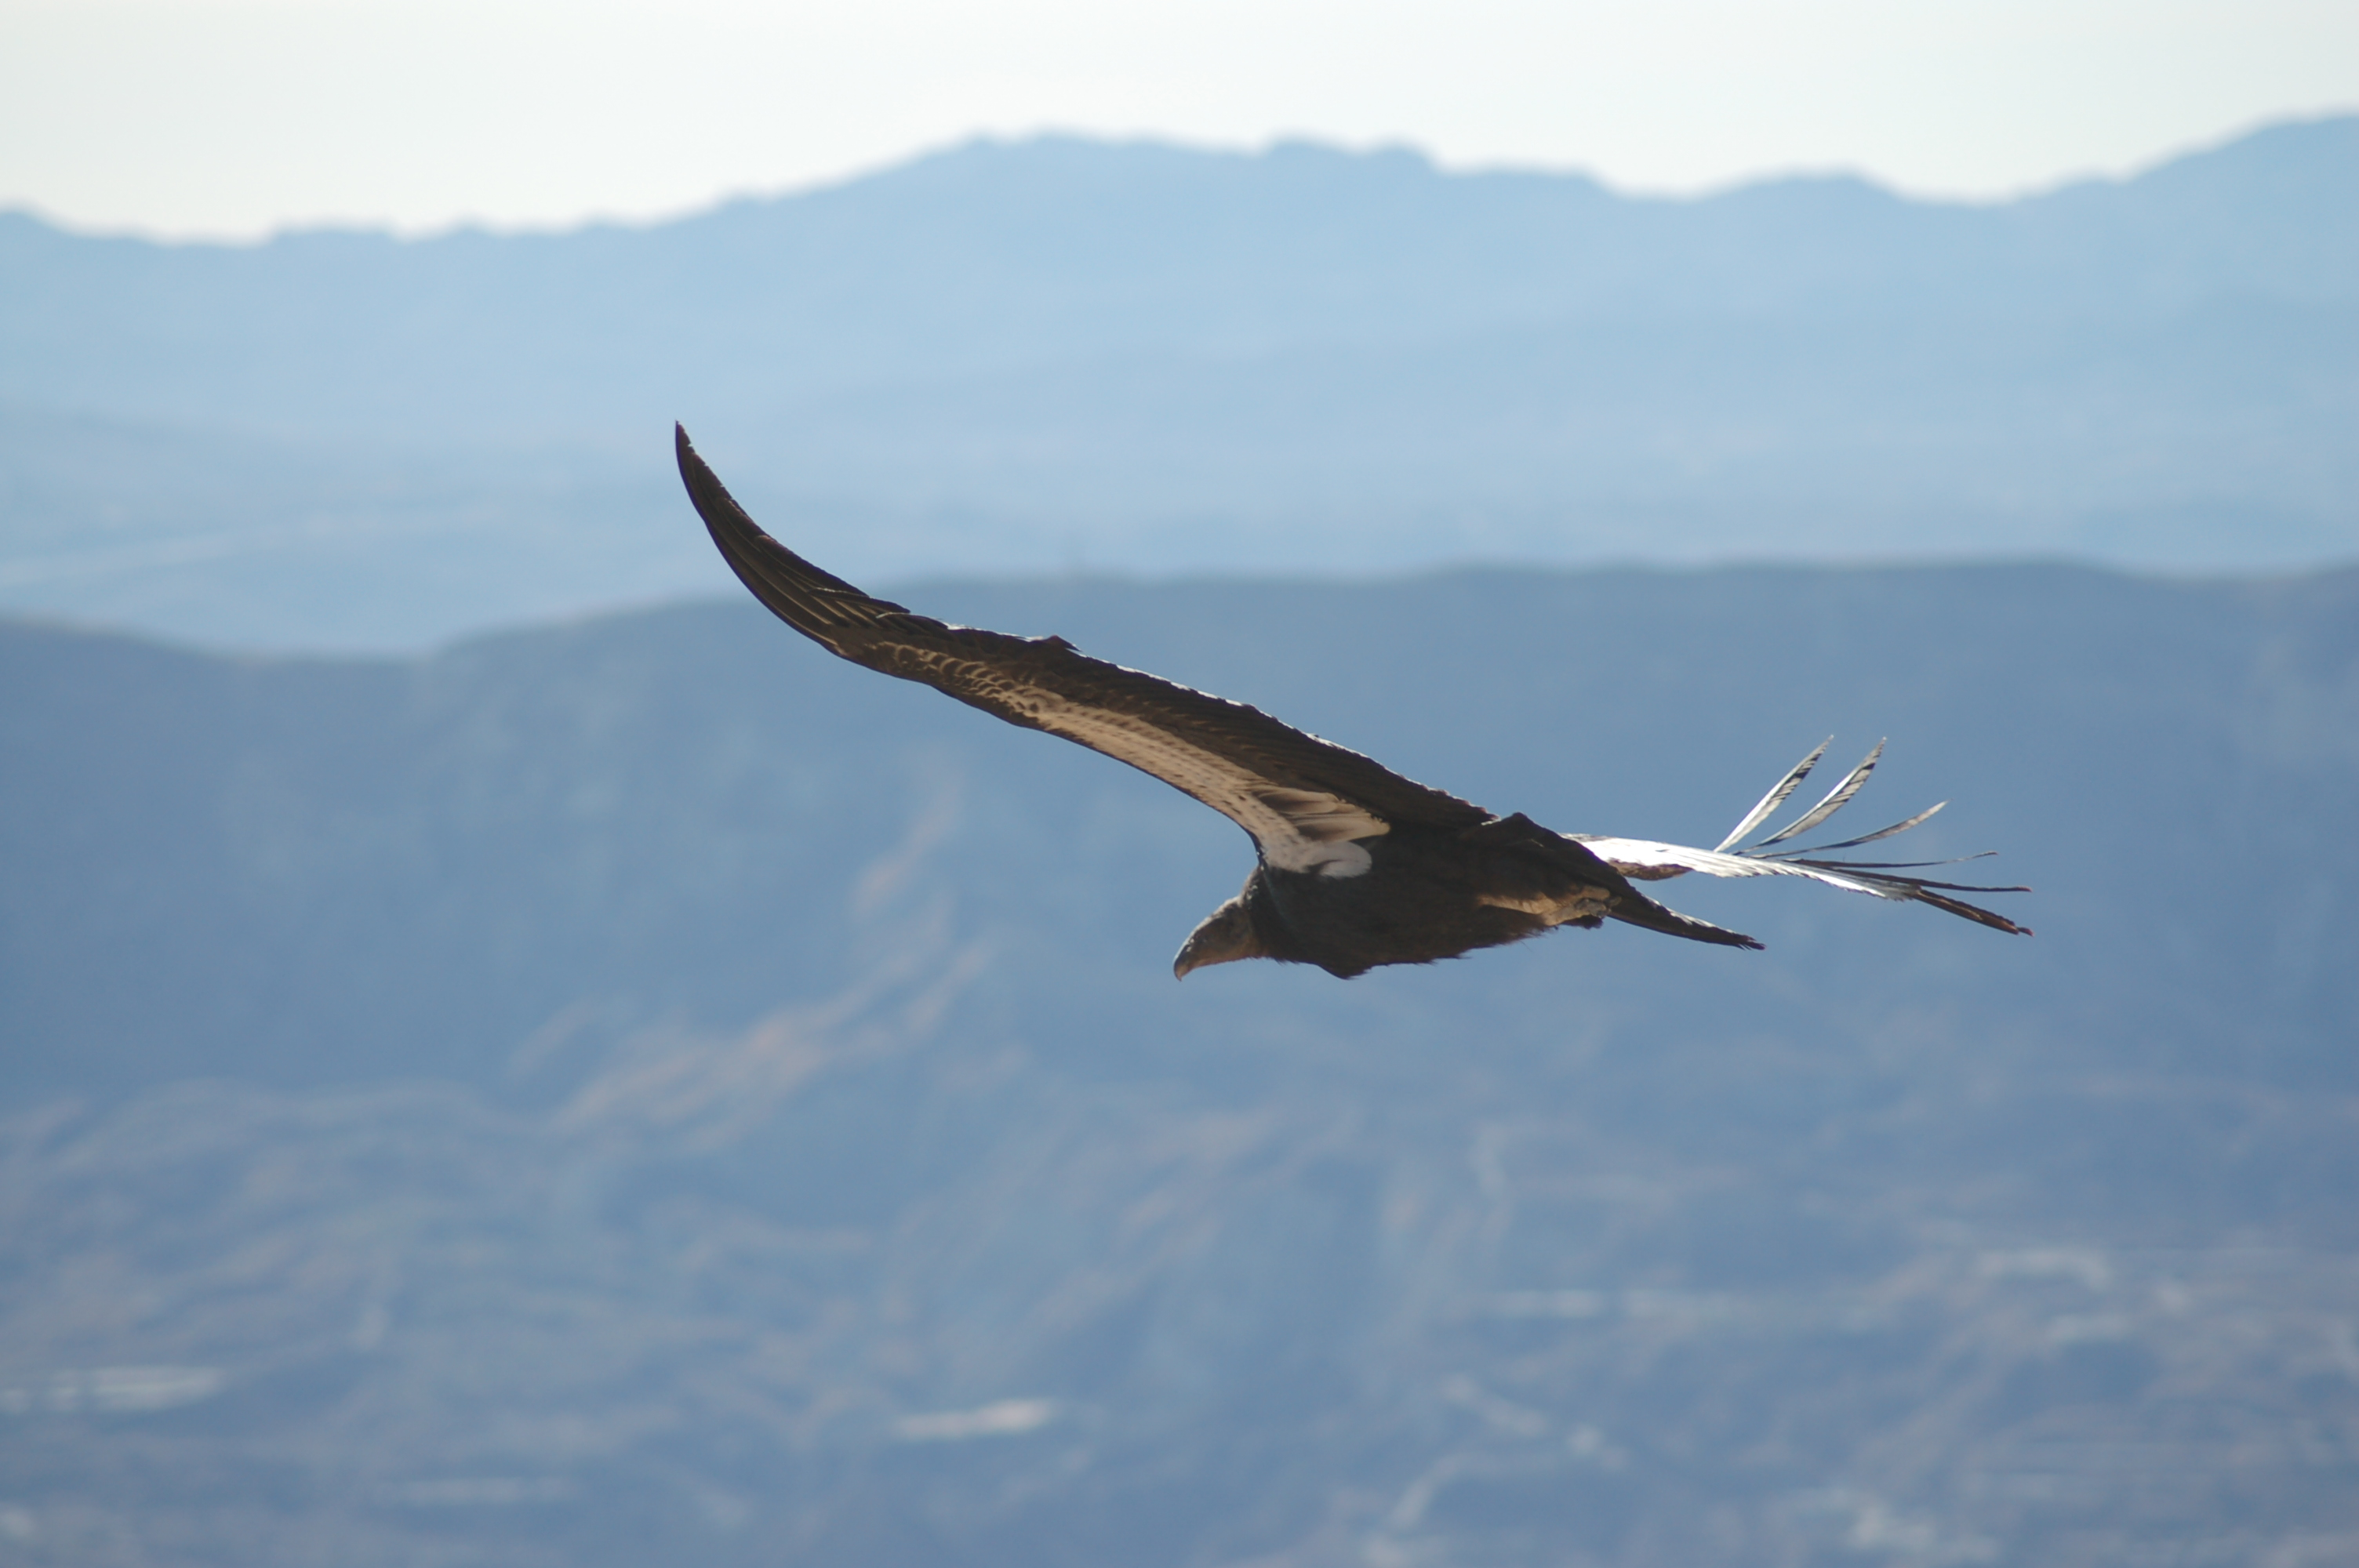 California condor #412 soars above the Los Padres National Forest